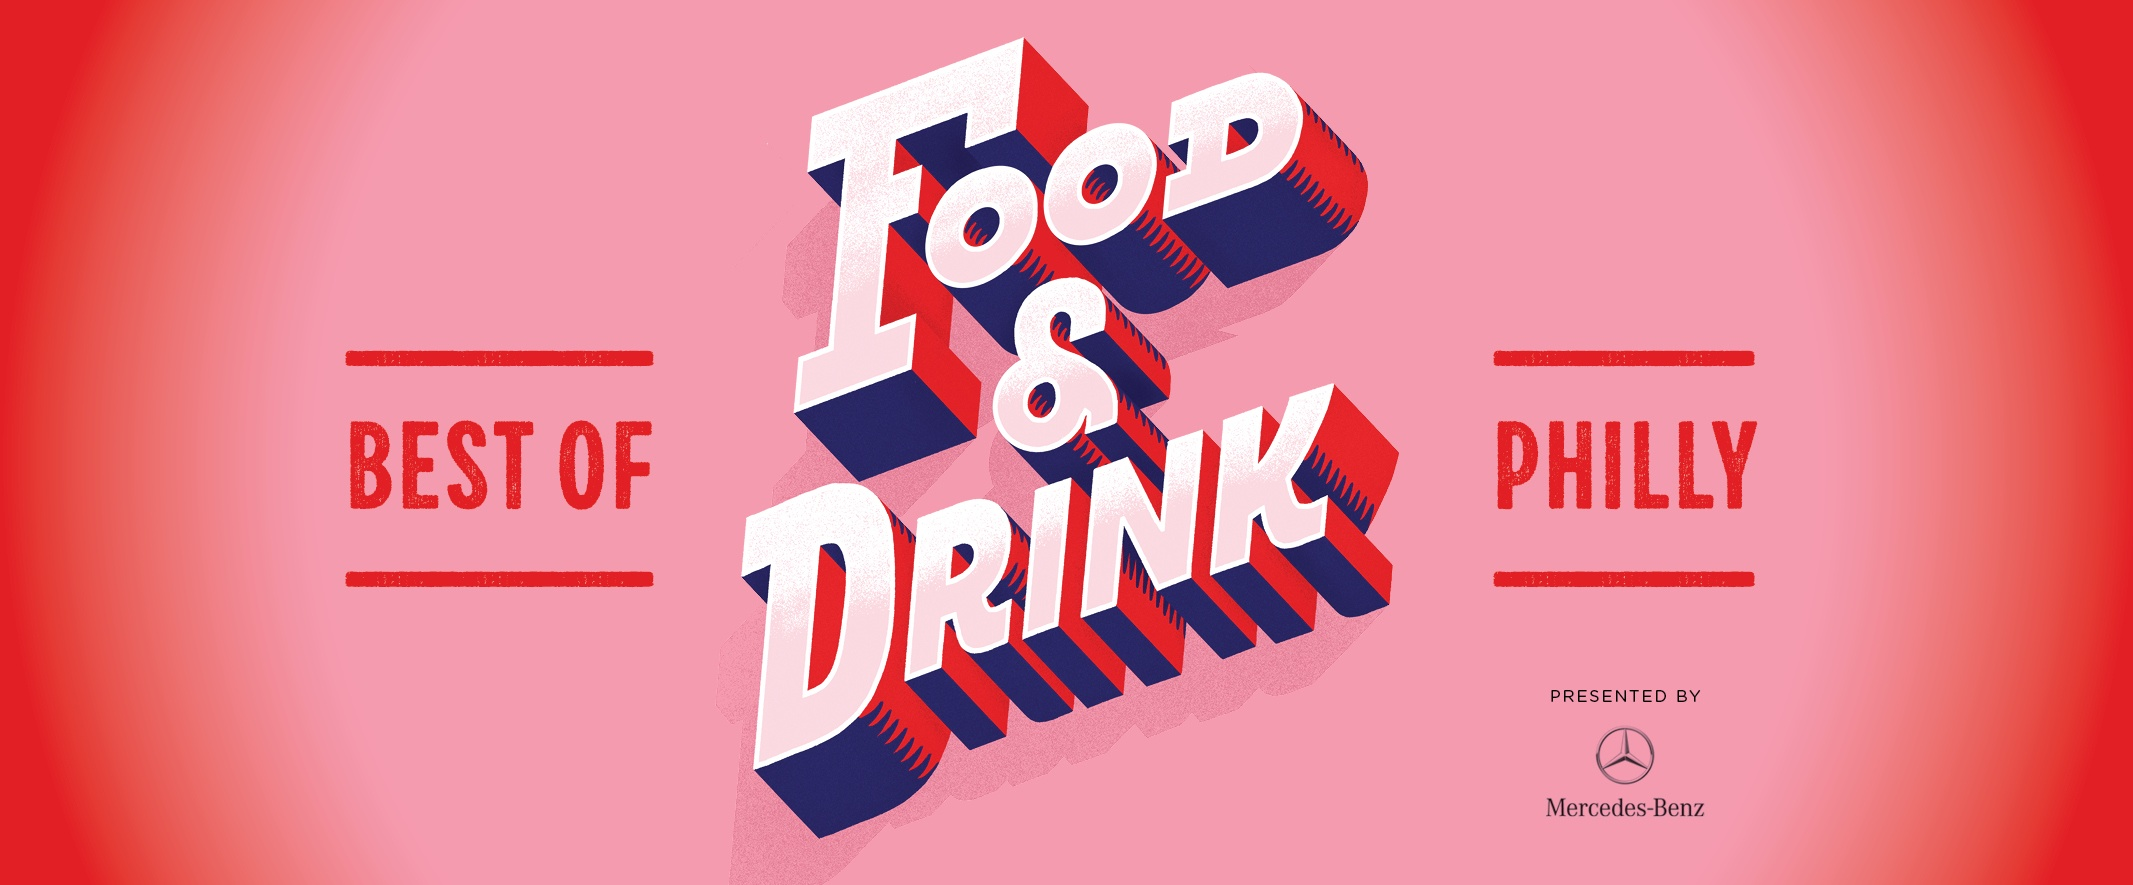 Best Of Philly 2019 Best of Philly 2019: Food and Drink